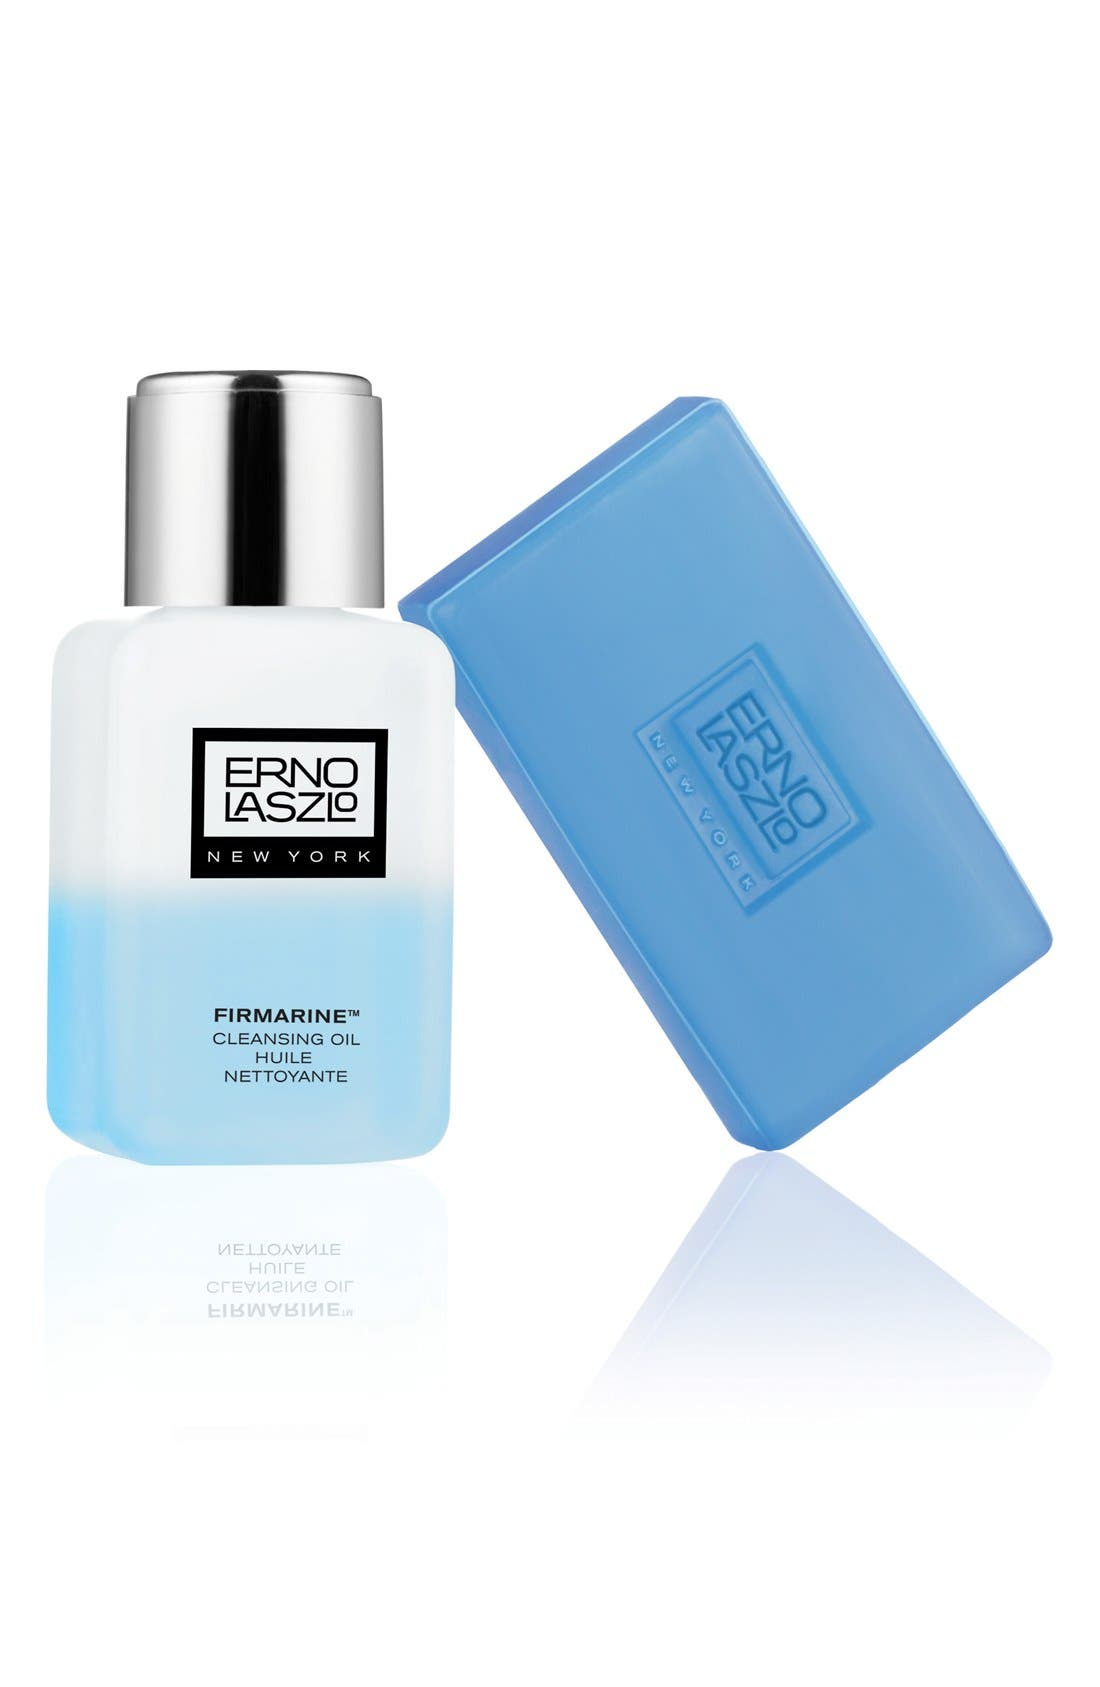 Erno Laszlo 'Firmarine' Cleansing Set ($38 Value)